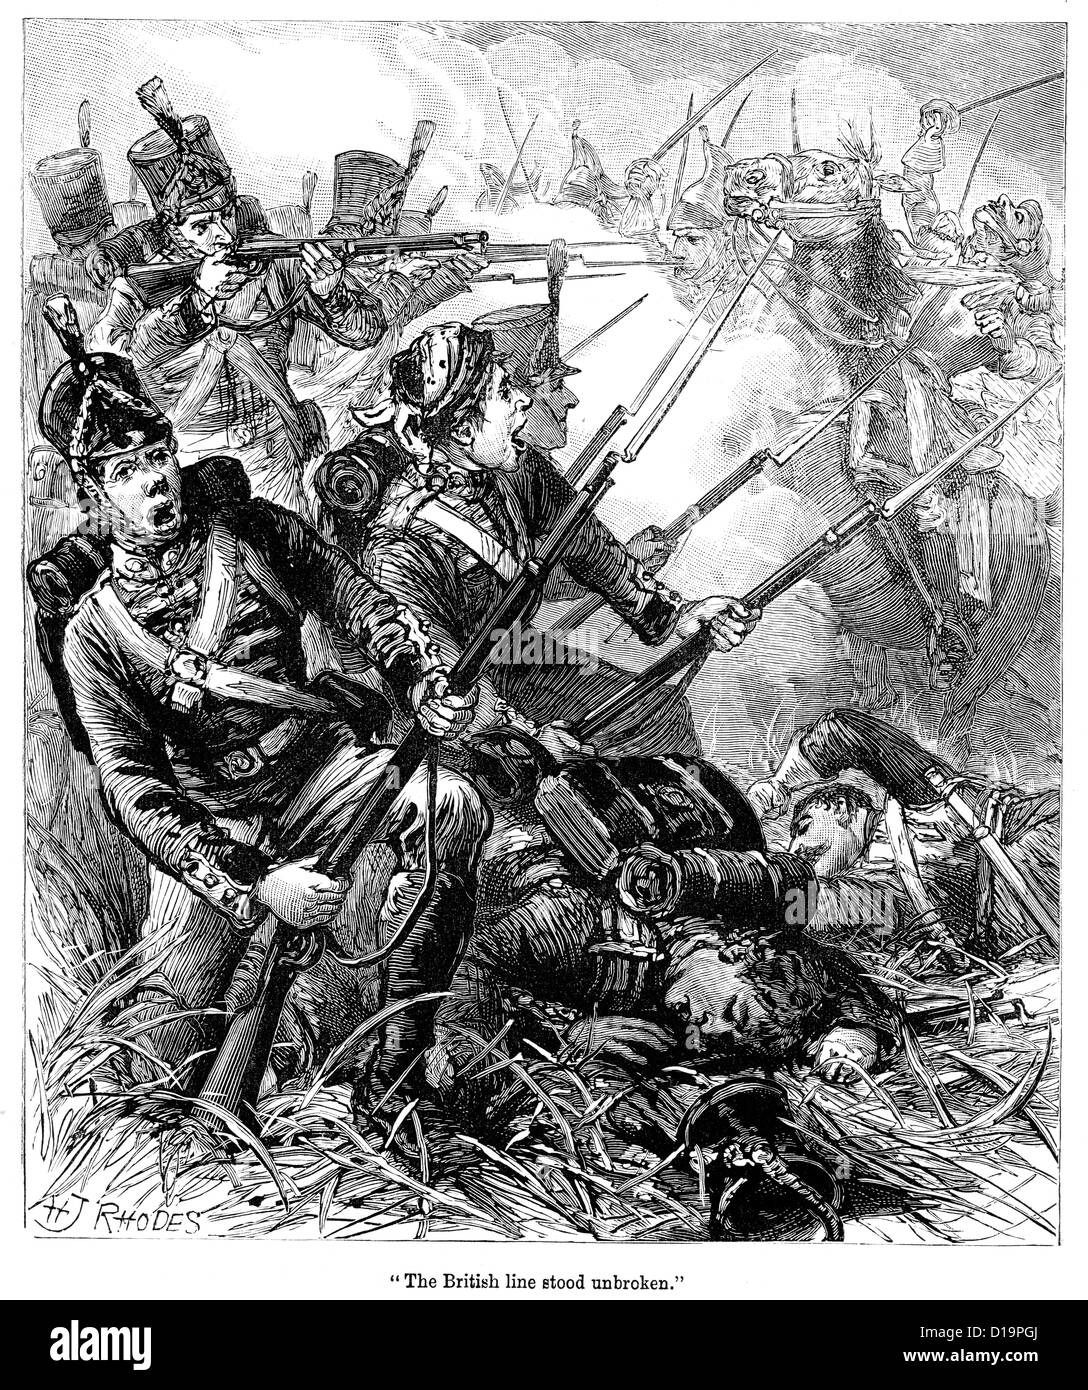 Victorian engraving of British infantry square resisting a cavalry change from the French during the Napoleonic - Stock Image